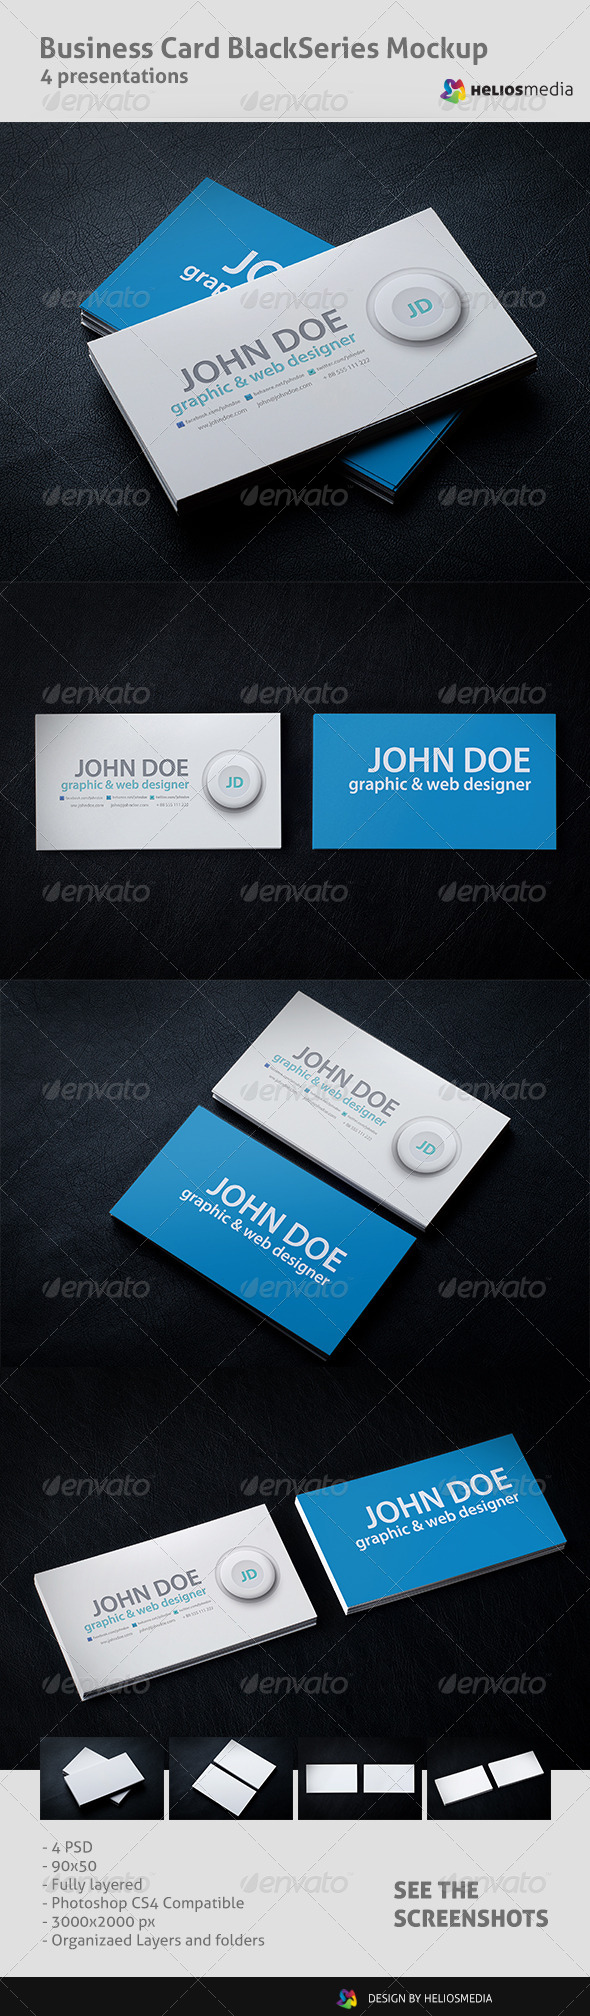 GraphicRiver Business Card BlackSeries Mockup 5680576